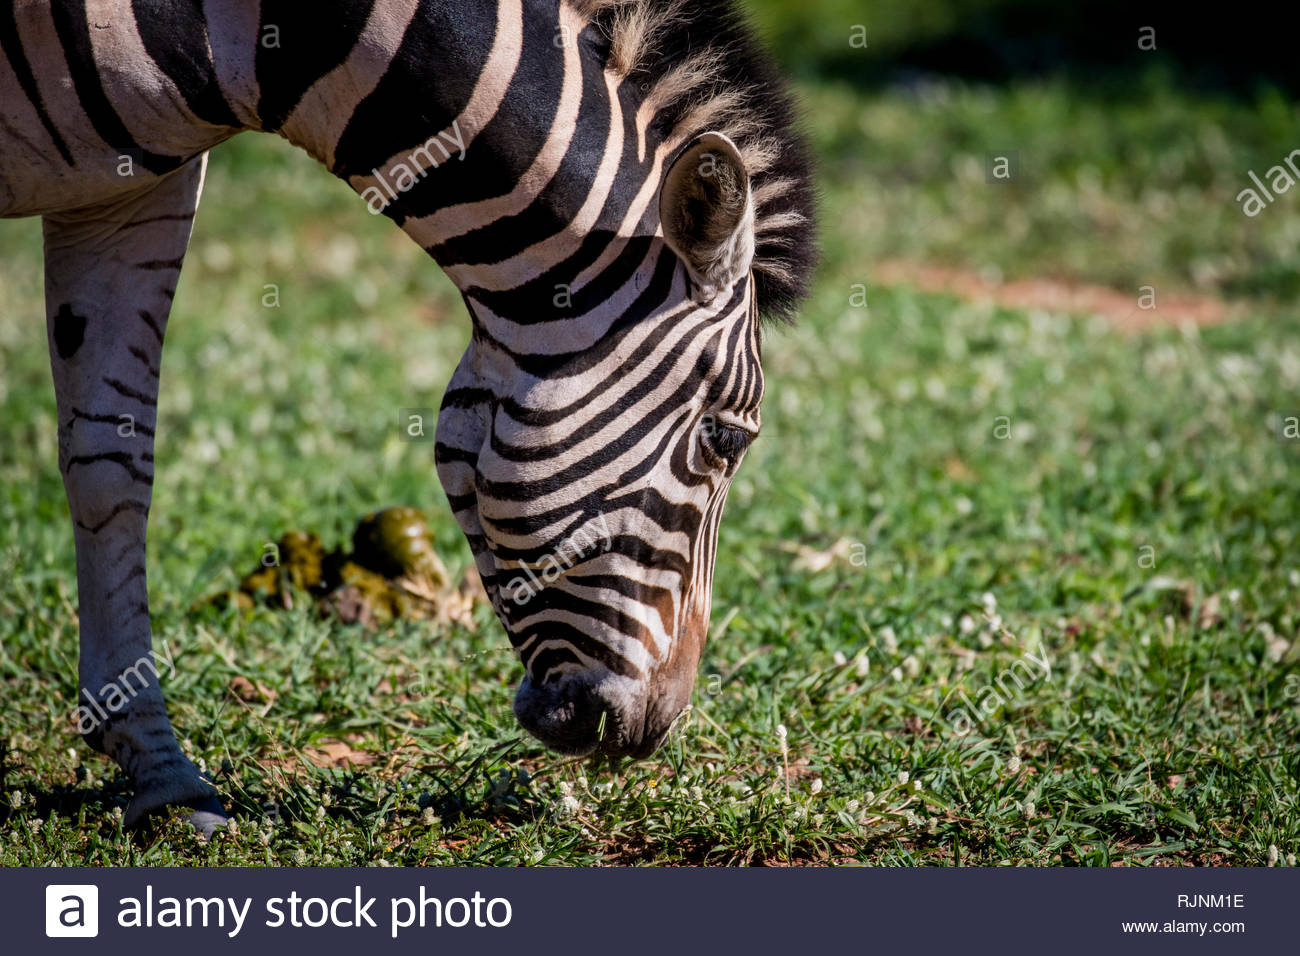 Head of a zebra eating grass in City of Tshwane, Gauteng, South Africa - Stock Image